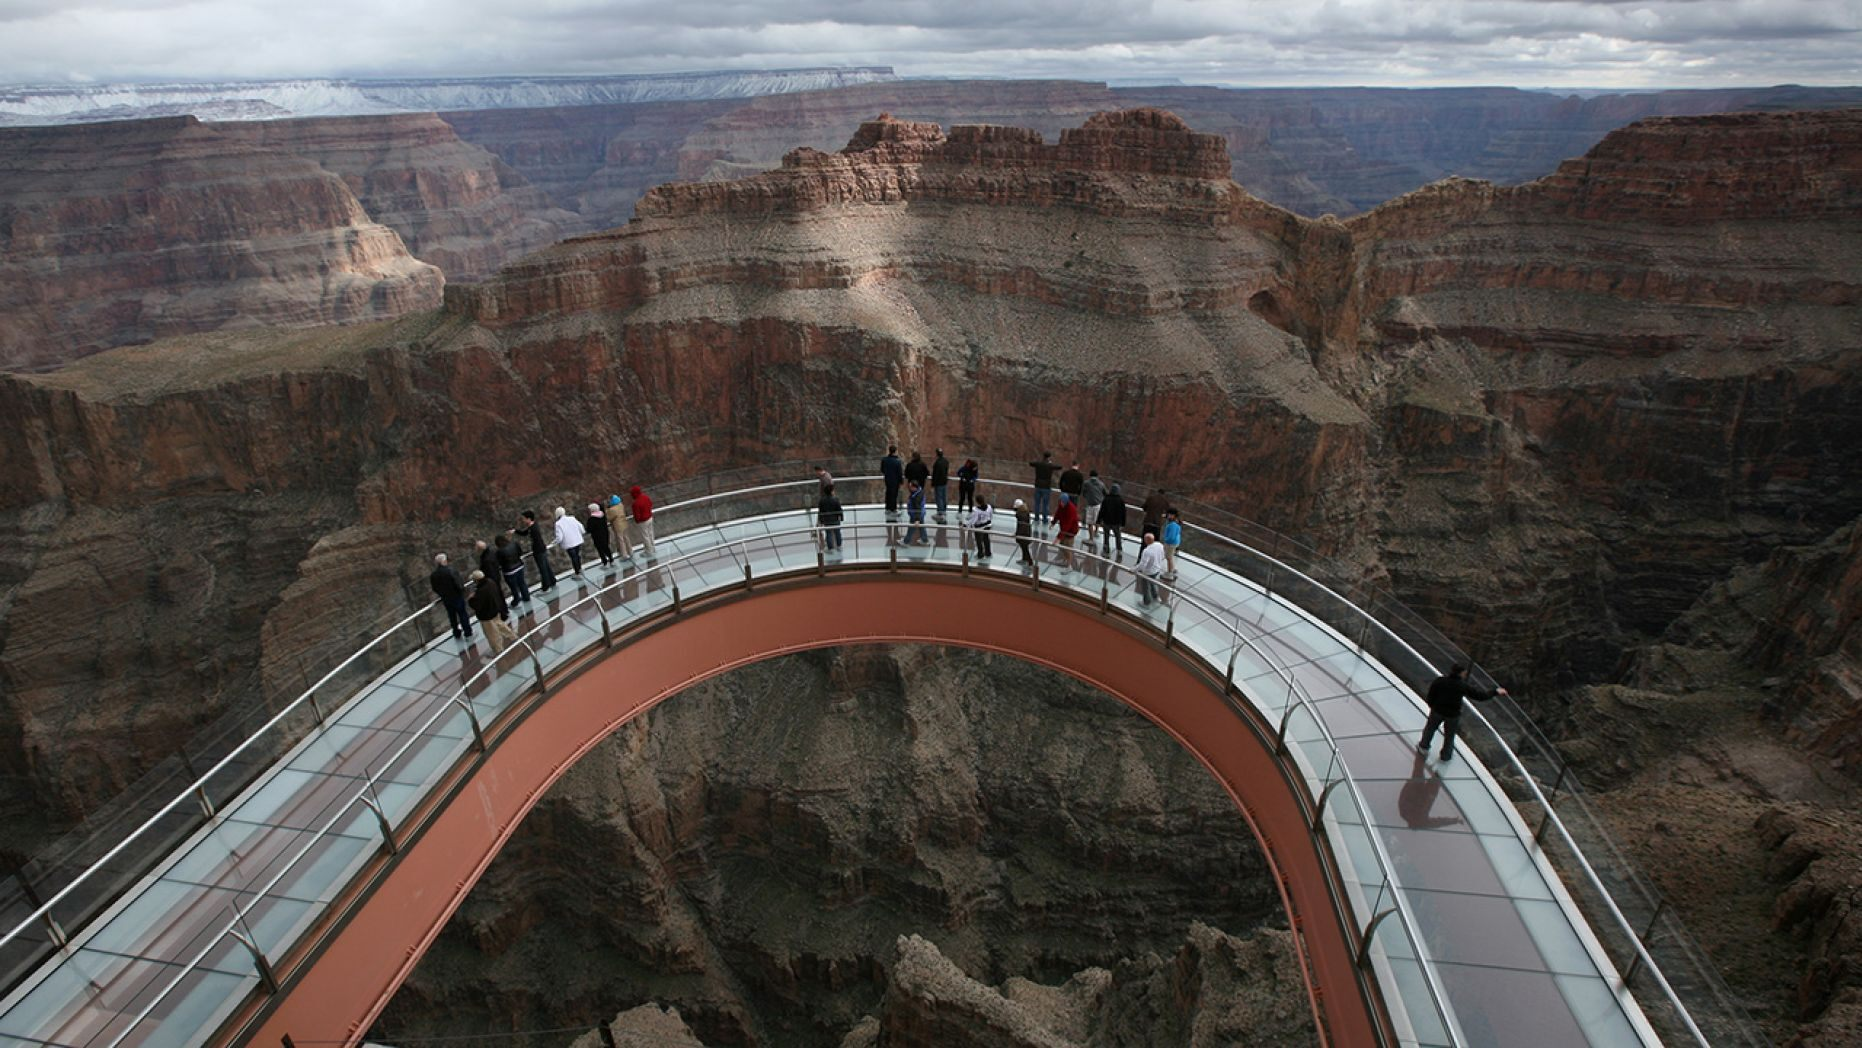 A 28-year-old man jumped from the Grand Canyon Skywalk on Saturday, according to officials.